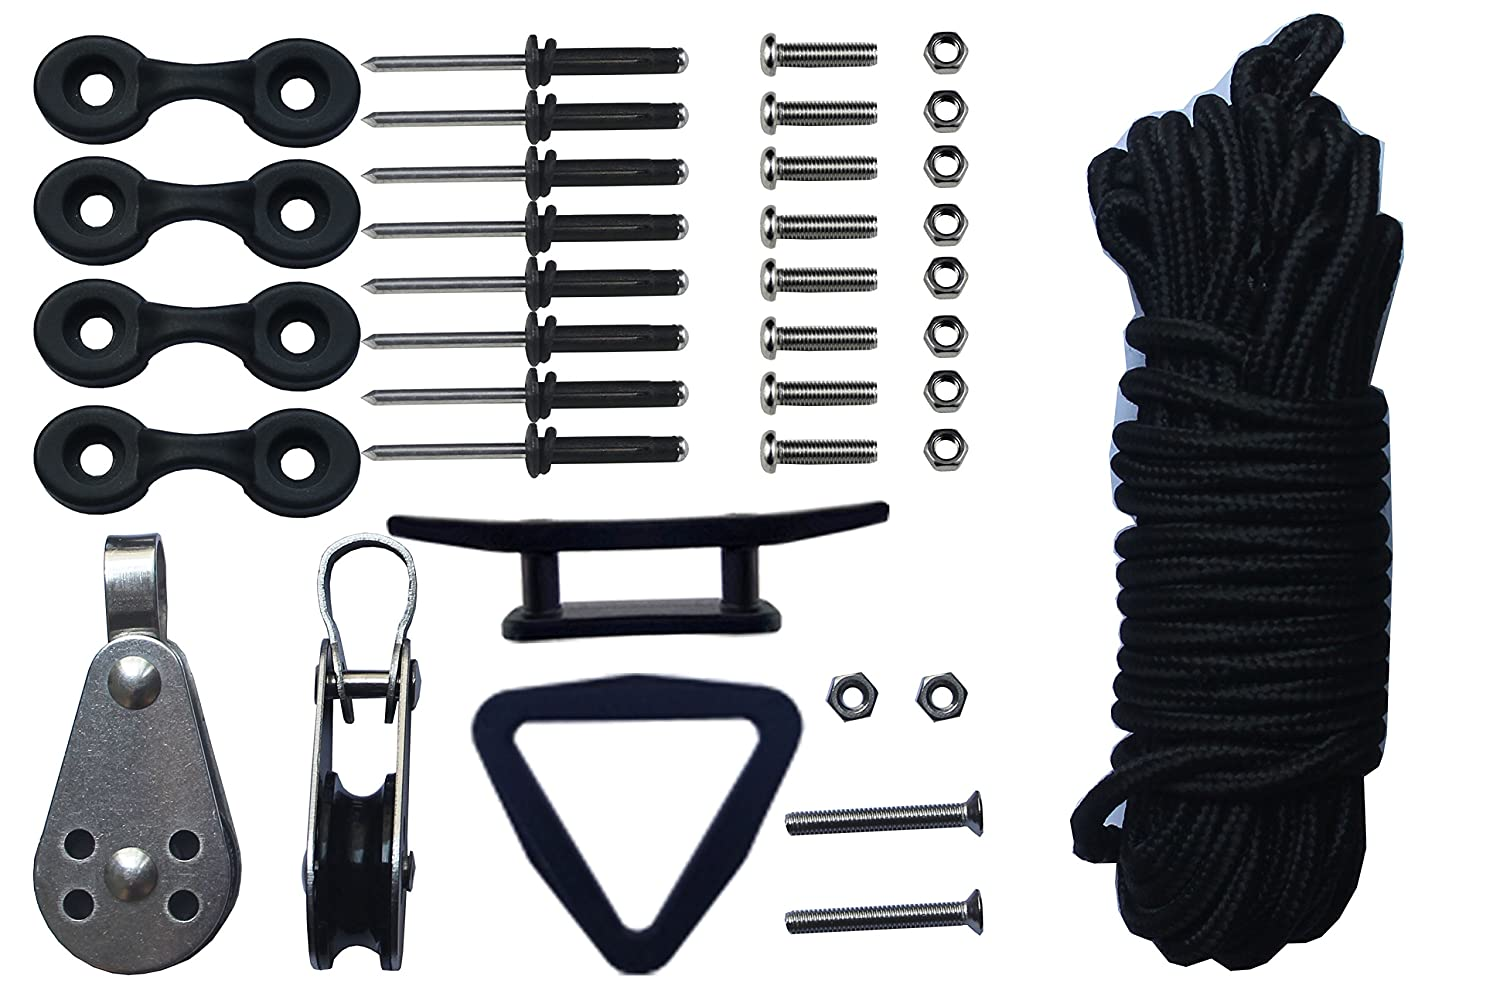 Rope Pulley Anchor : Kayak canoes anchor trolley kit system w pulleys pad eye cleats ring feet of